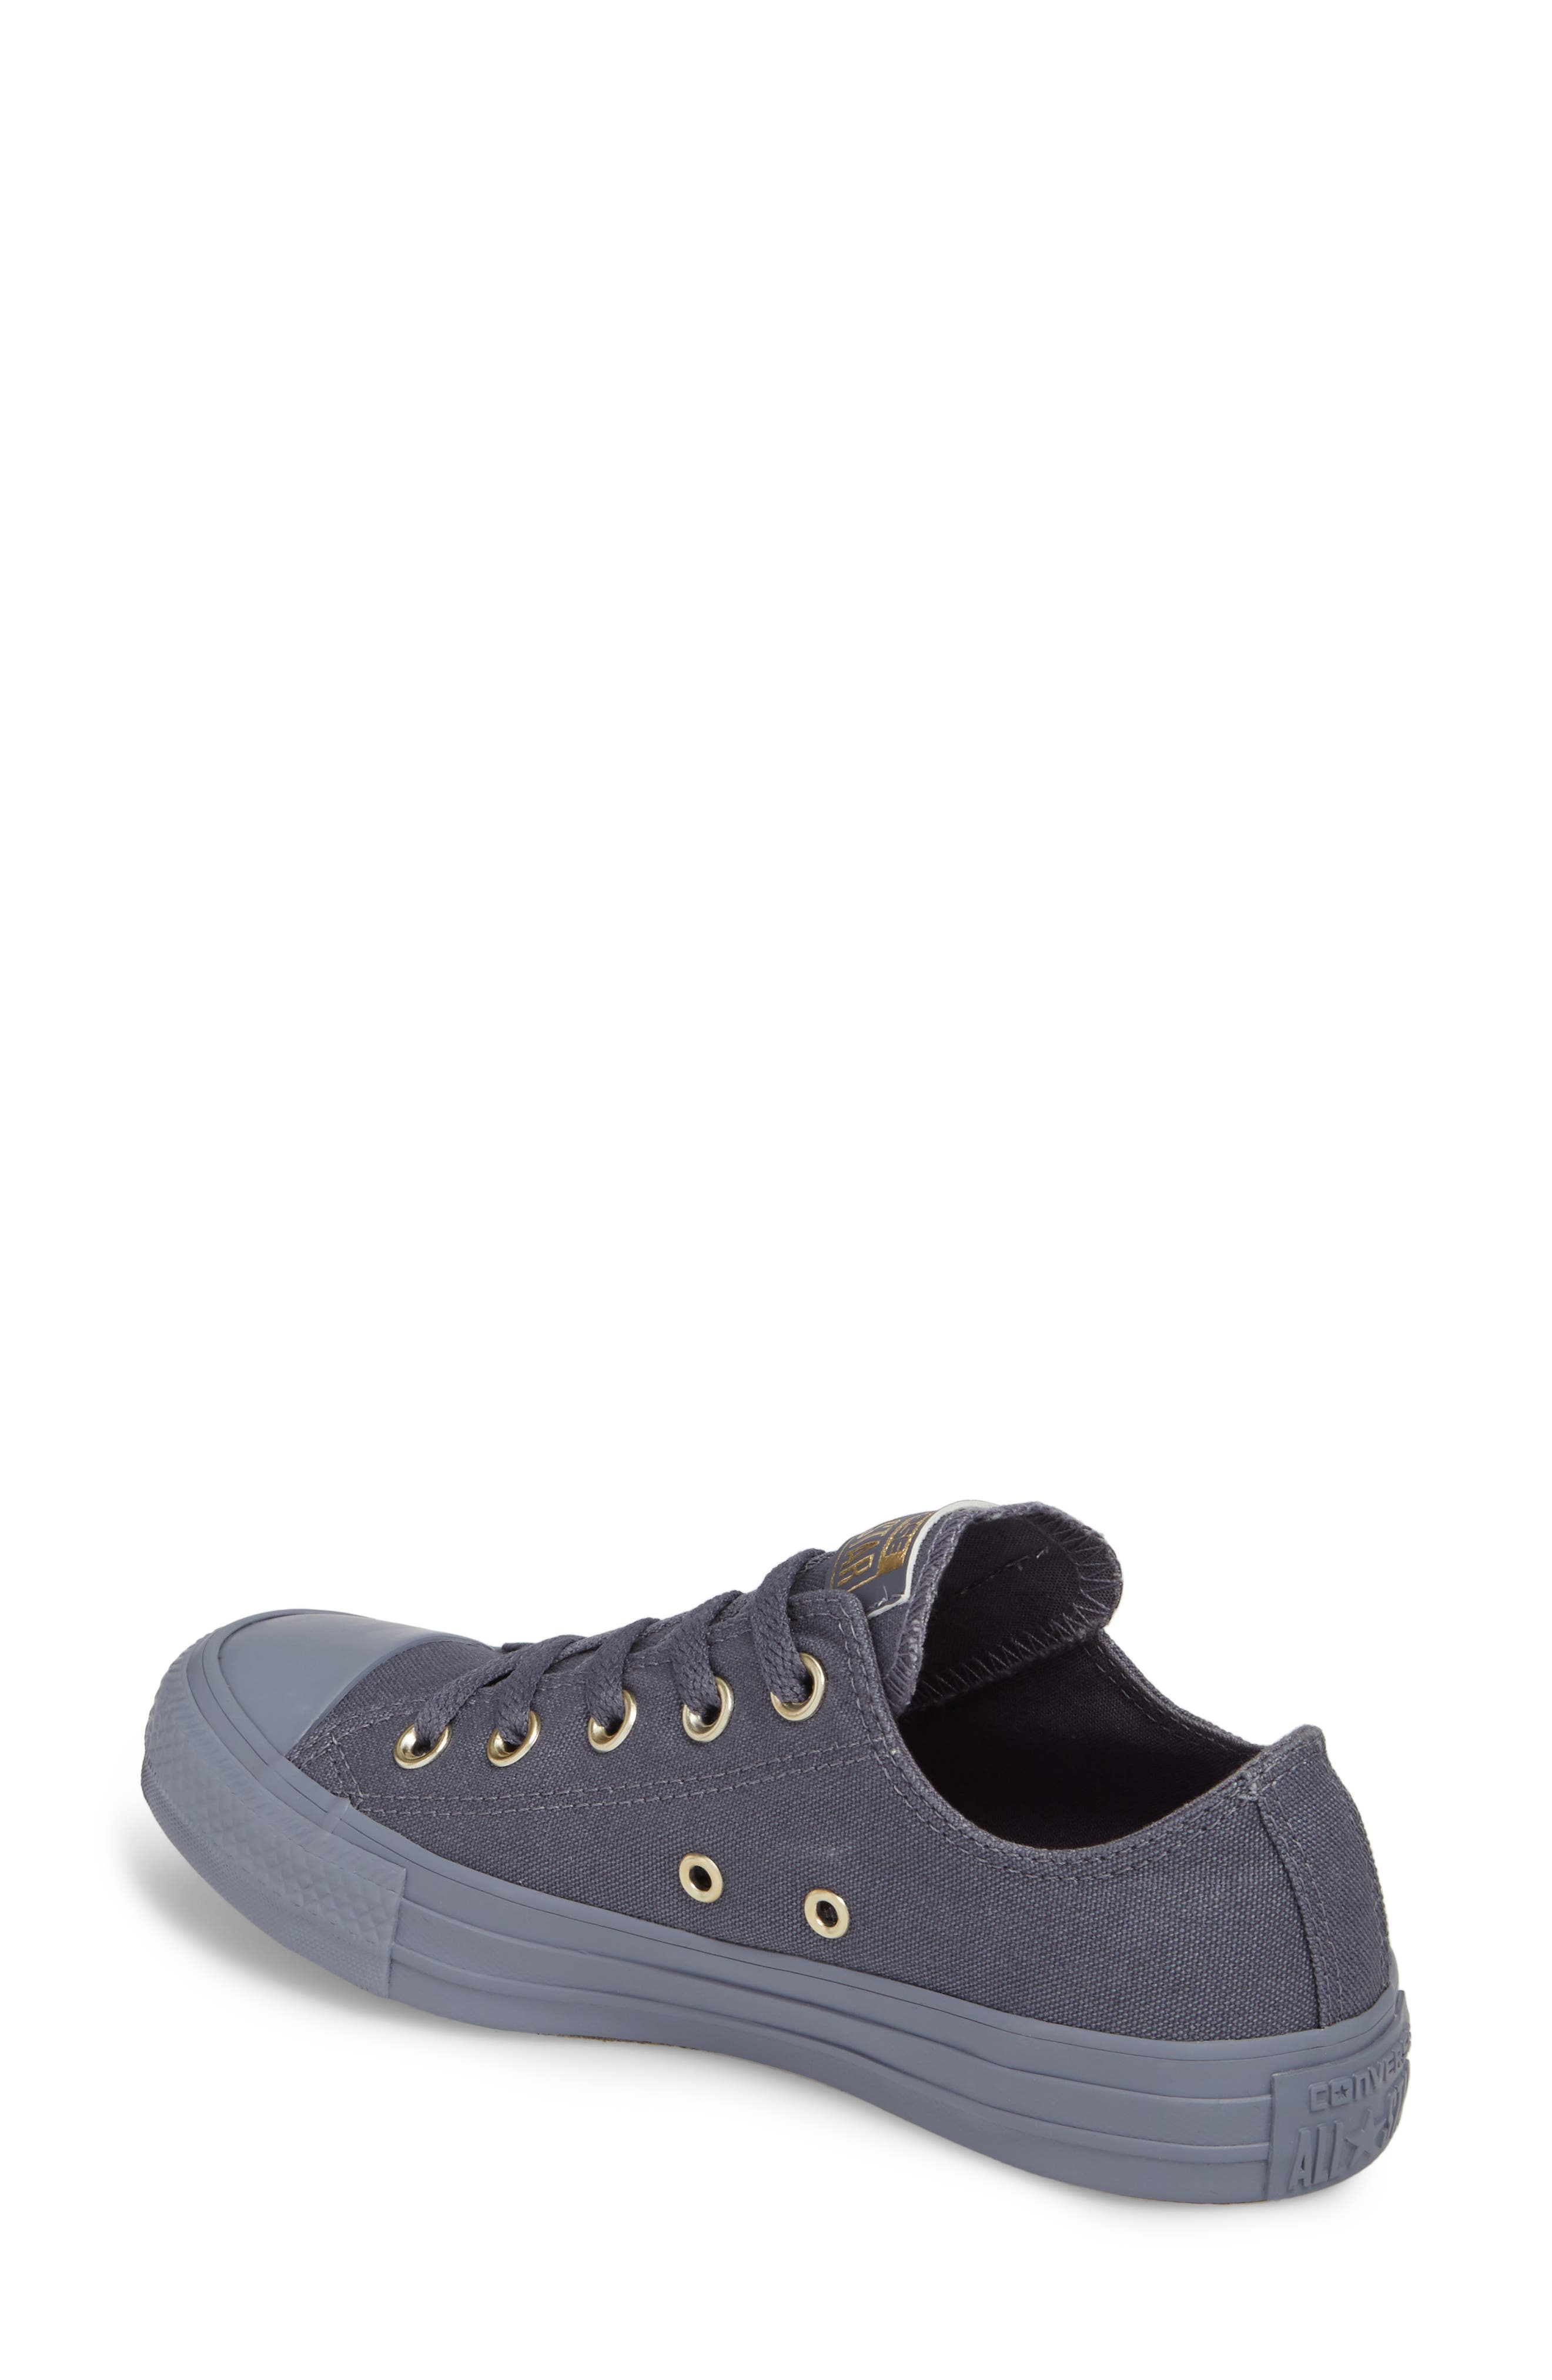 Chuck Taylor<sup>®</sup> All Star<sup>®</sup> Ox Sneaker,                             Alternate thumbnail 2, color,                             021